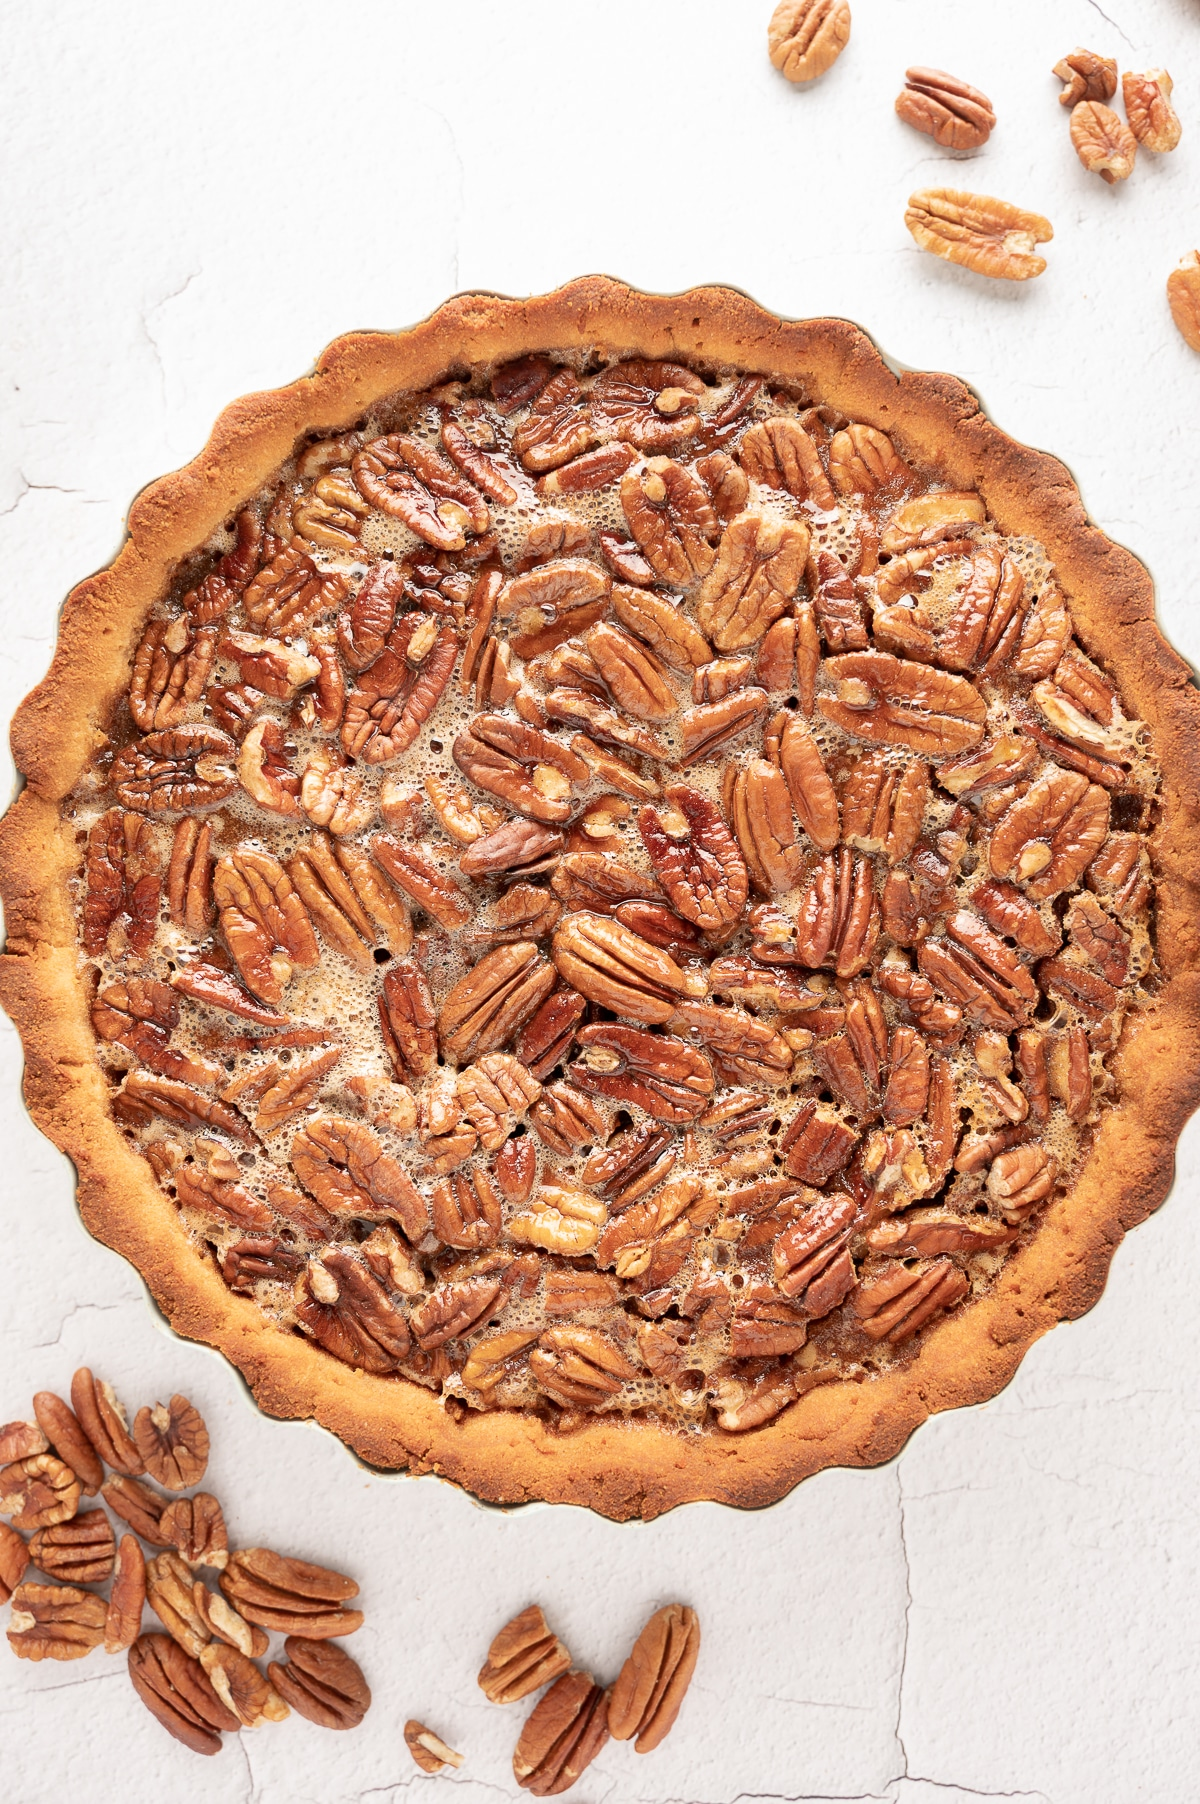 sugar-free pecan pie on a bright white back ground with scattered raw pecans.